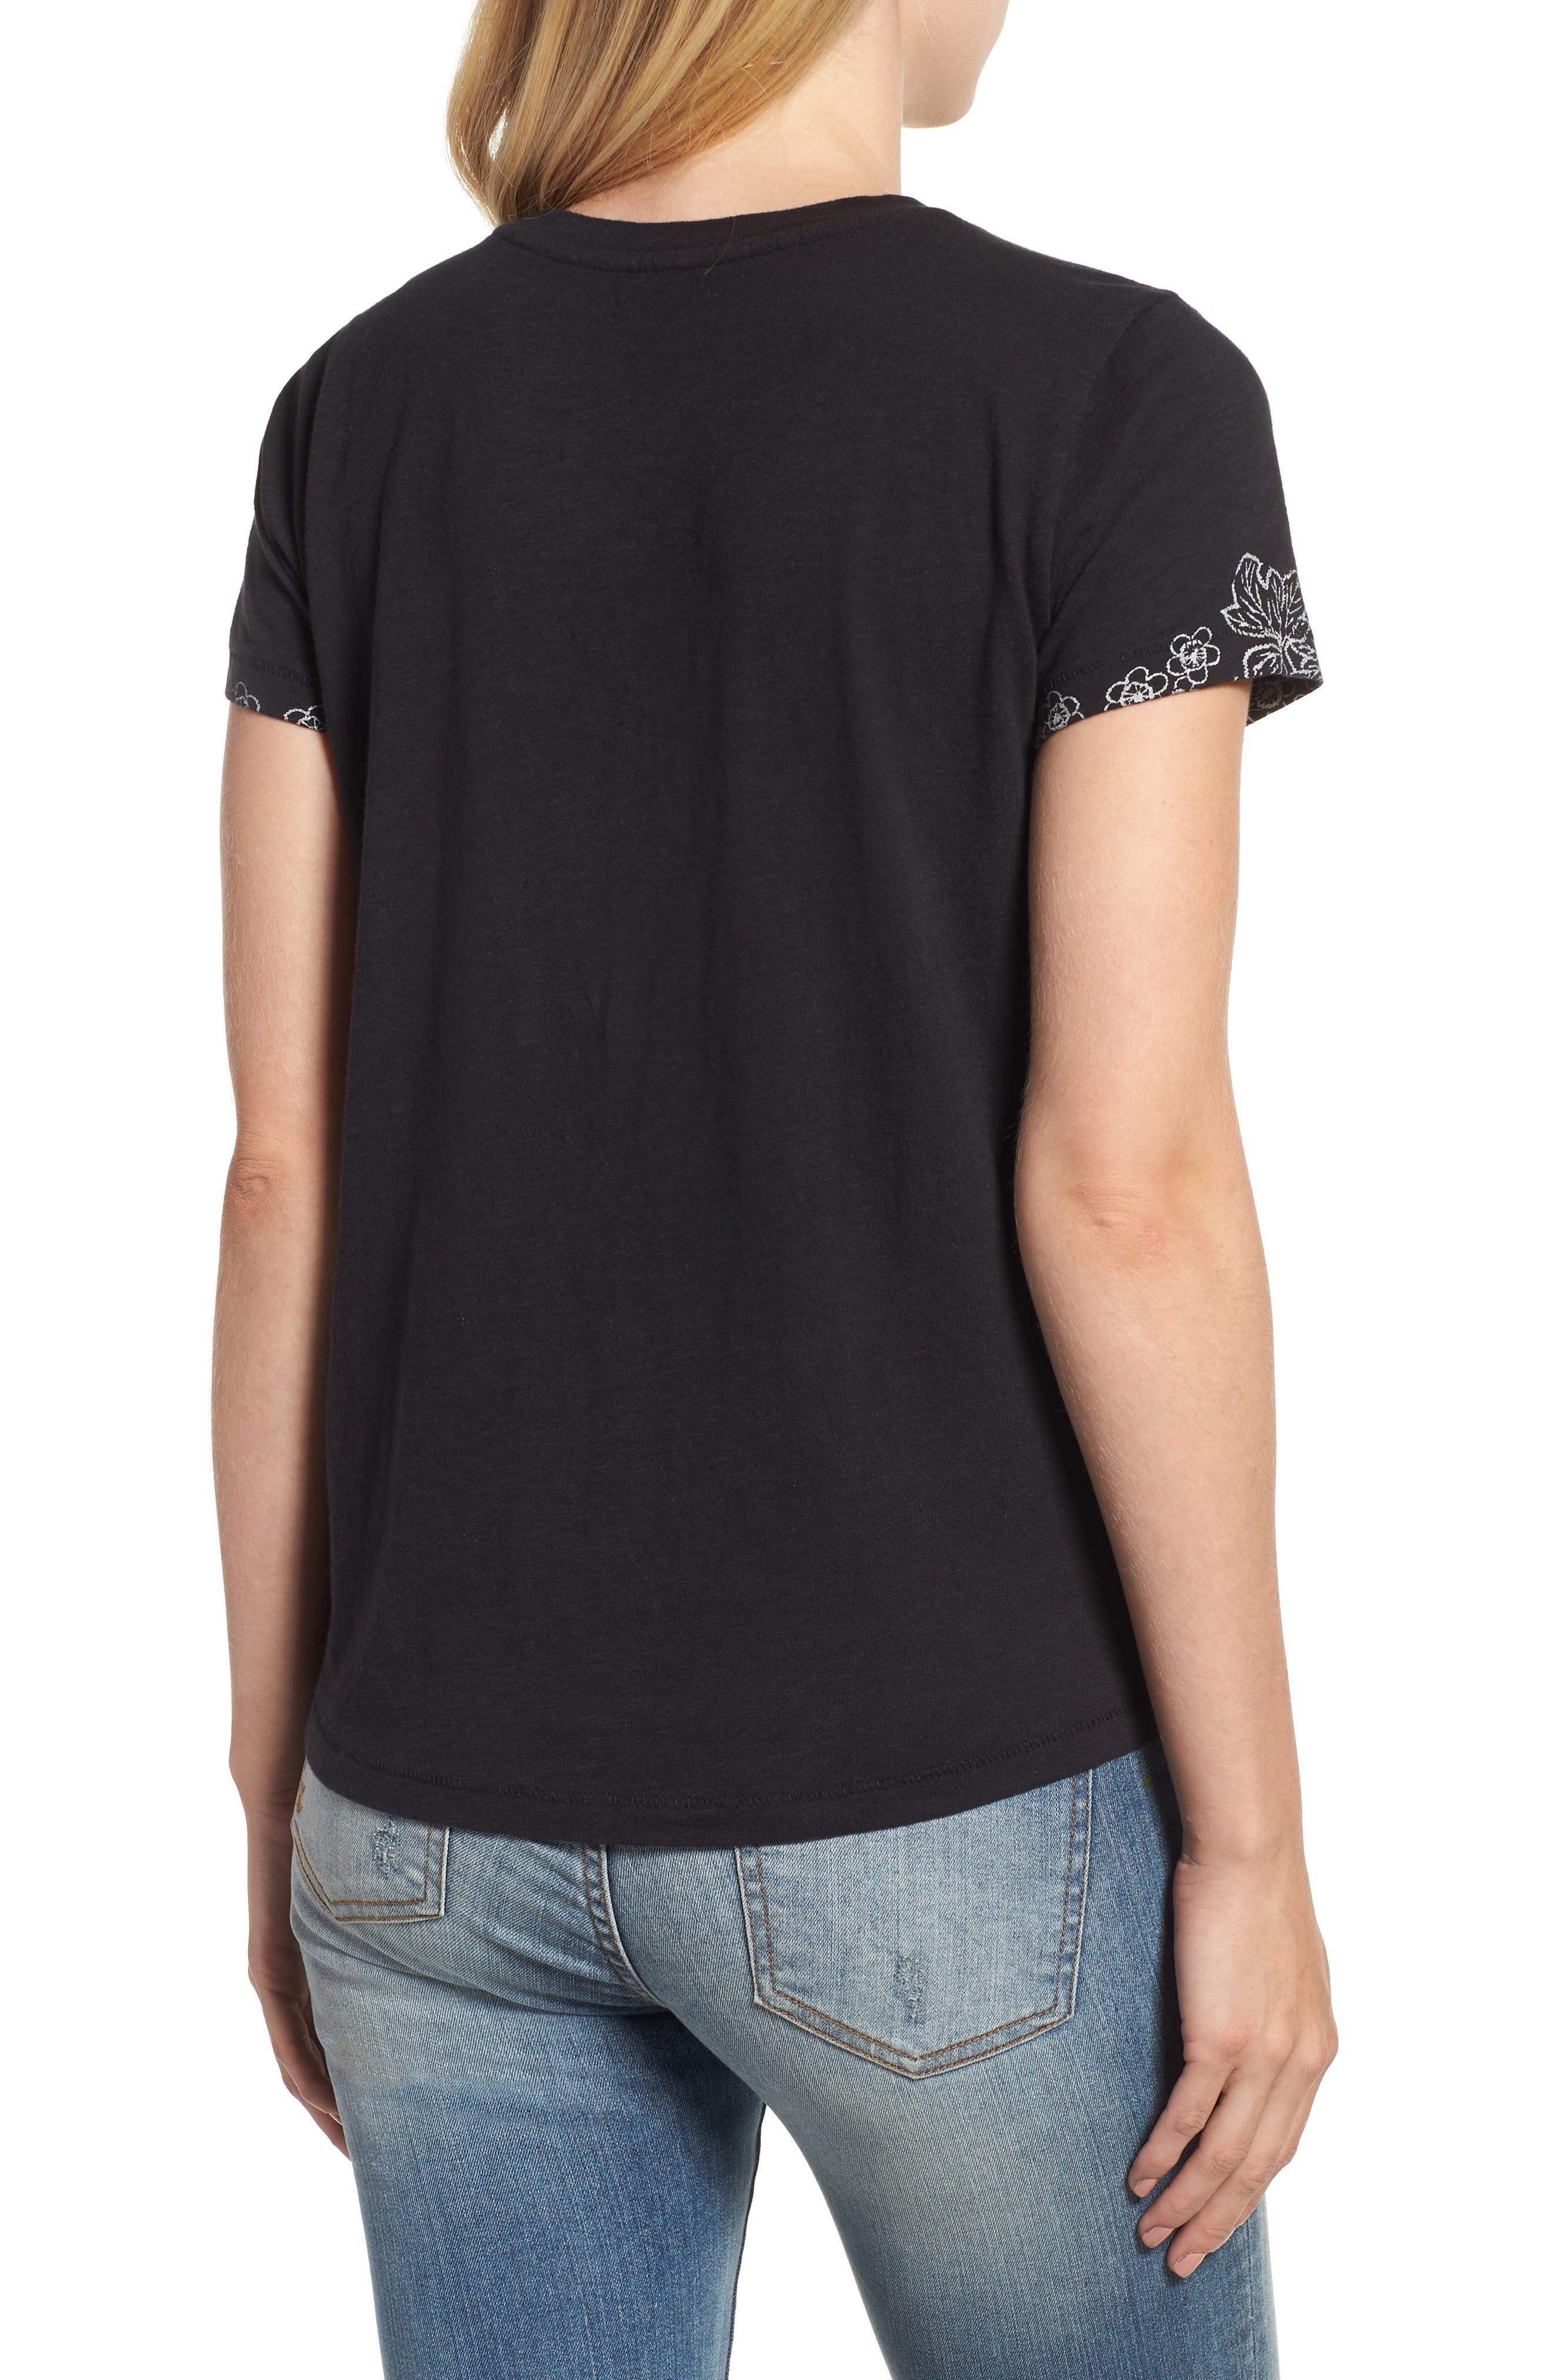 LUCKY BRAND,                             Embroidered Tee,                             Alternate thumbnail 2, color,                             001